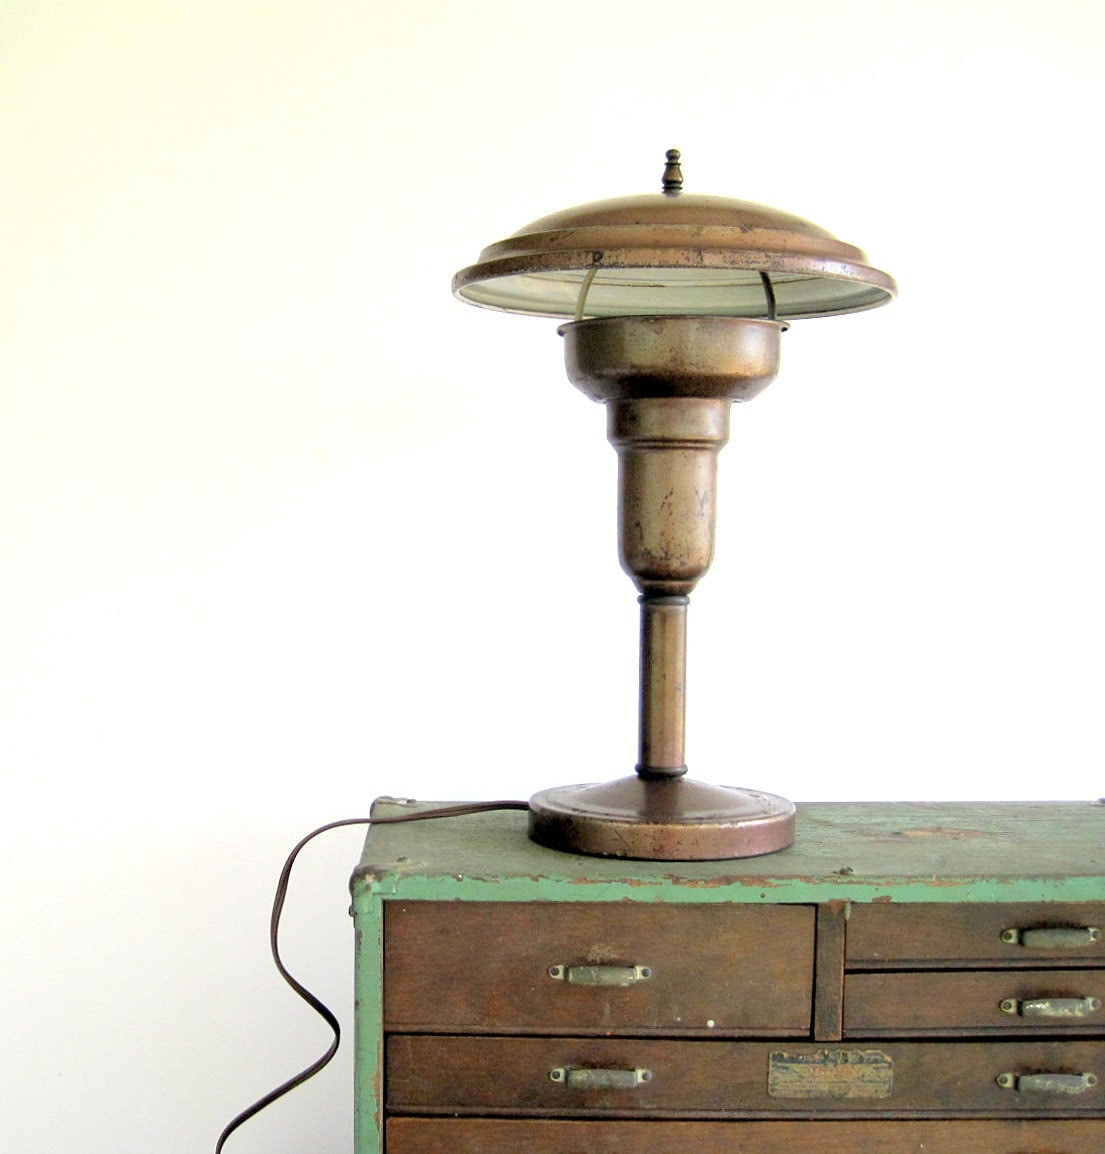 Vintage And Industrial Lighting From Etsy: Vintage Industrial Lighting Flying Saucer Table Desk Lamp